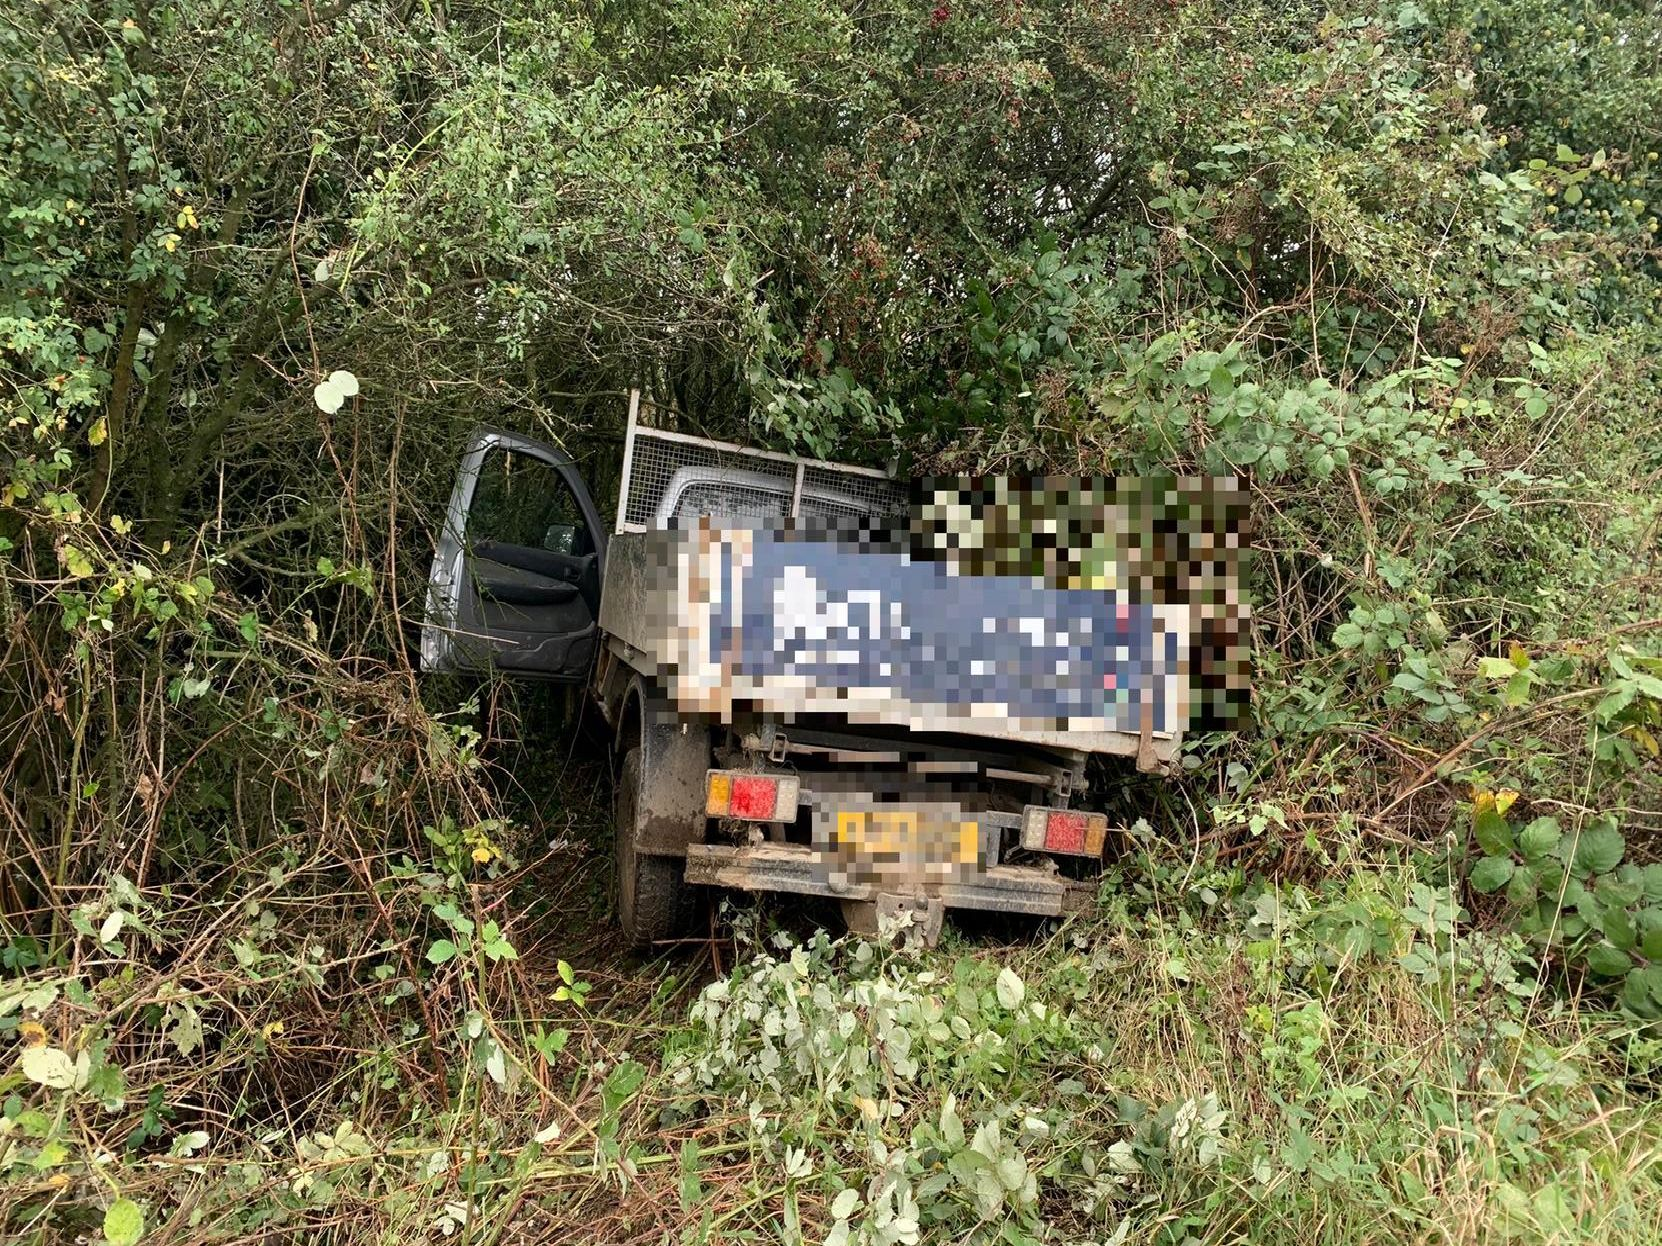 The van left the road and ended up in the bushes